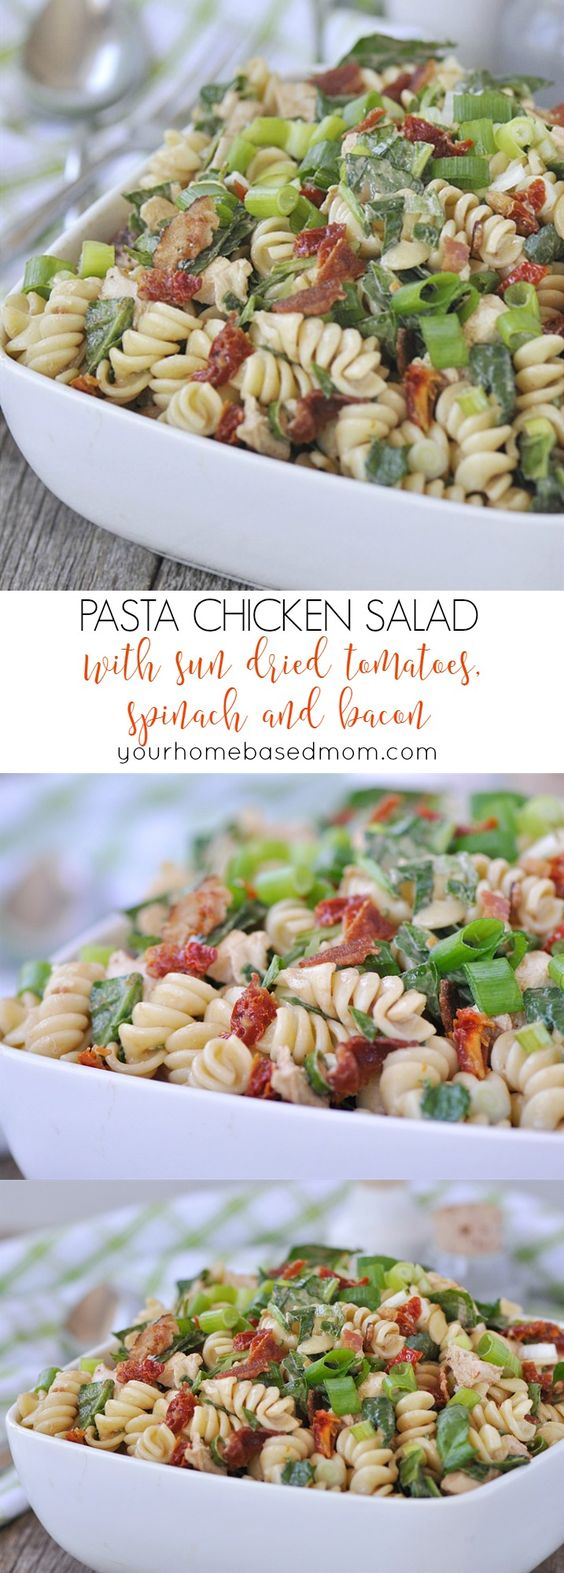 Pasta Chicken Salad with Sun-Dried Tomatoes, Spinach and Bacon Recipe via Your Homebased Mom - packed with sun dried tomatoes, spinach and bacon. So yummy! Easy Pasta Salad Recipes - The BEST Yummy Barbecue Side Dishes, Potluck Favorites and Summer Dinner Party Crowd Pleasers #pastasaladrecipes #pastasalads #pastasalad #easypastasalad #potluckrecipes #potluck #partyfood #4thofJuly #picnicfood #sidedishrecipes #easysidedishes #cookoutfood #barbecuefood #blockparty